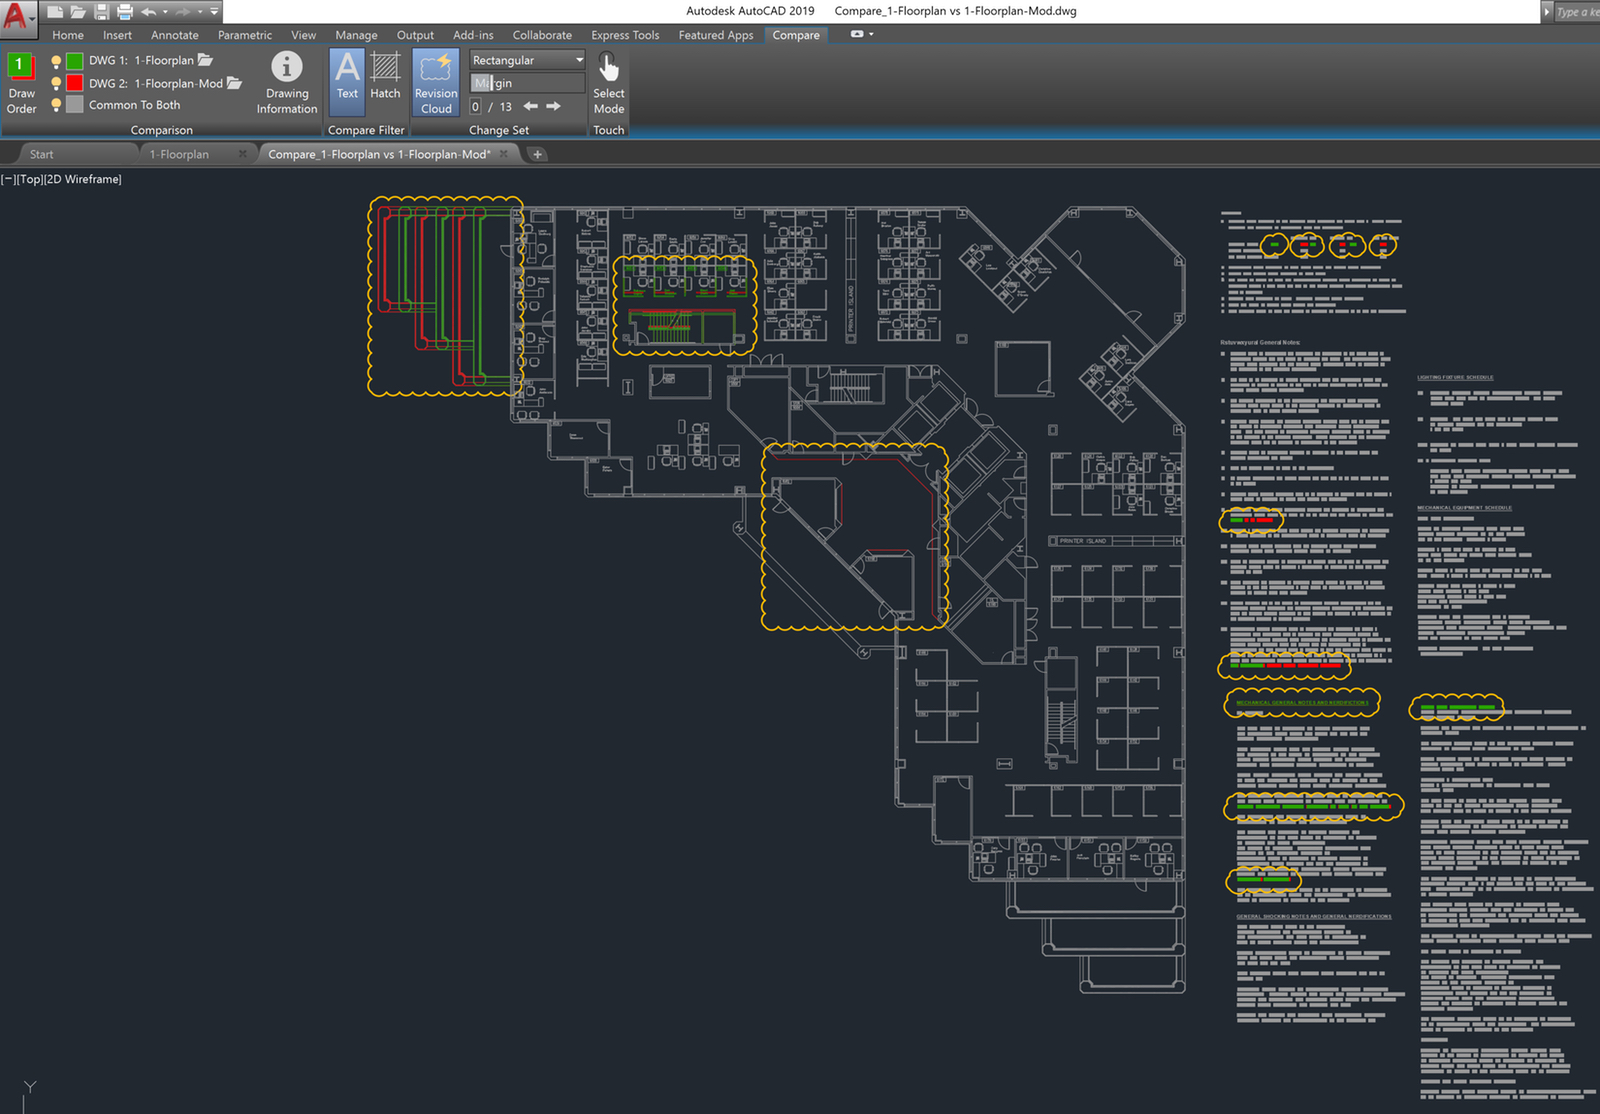 hight resolution of autocad 2019 dwg compare